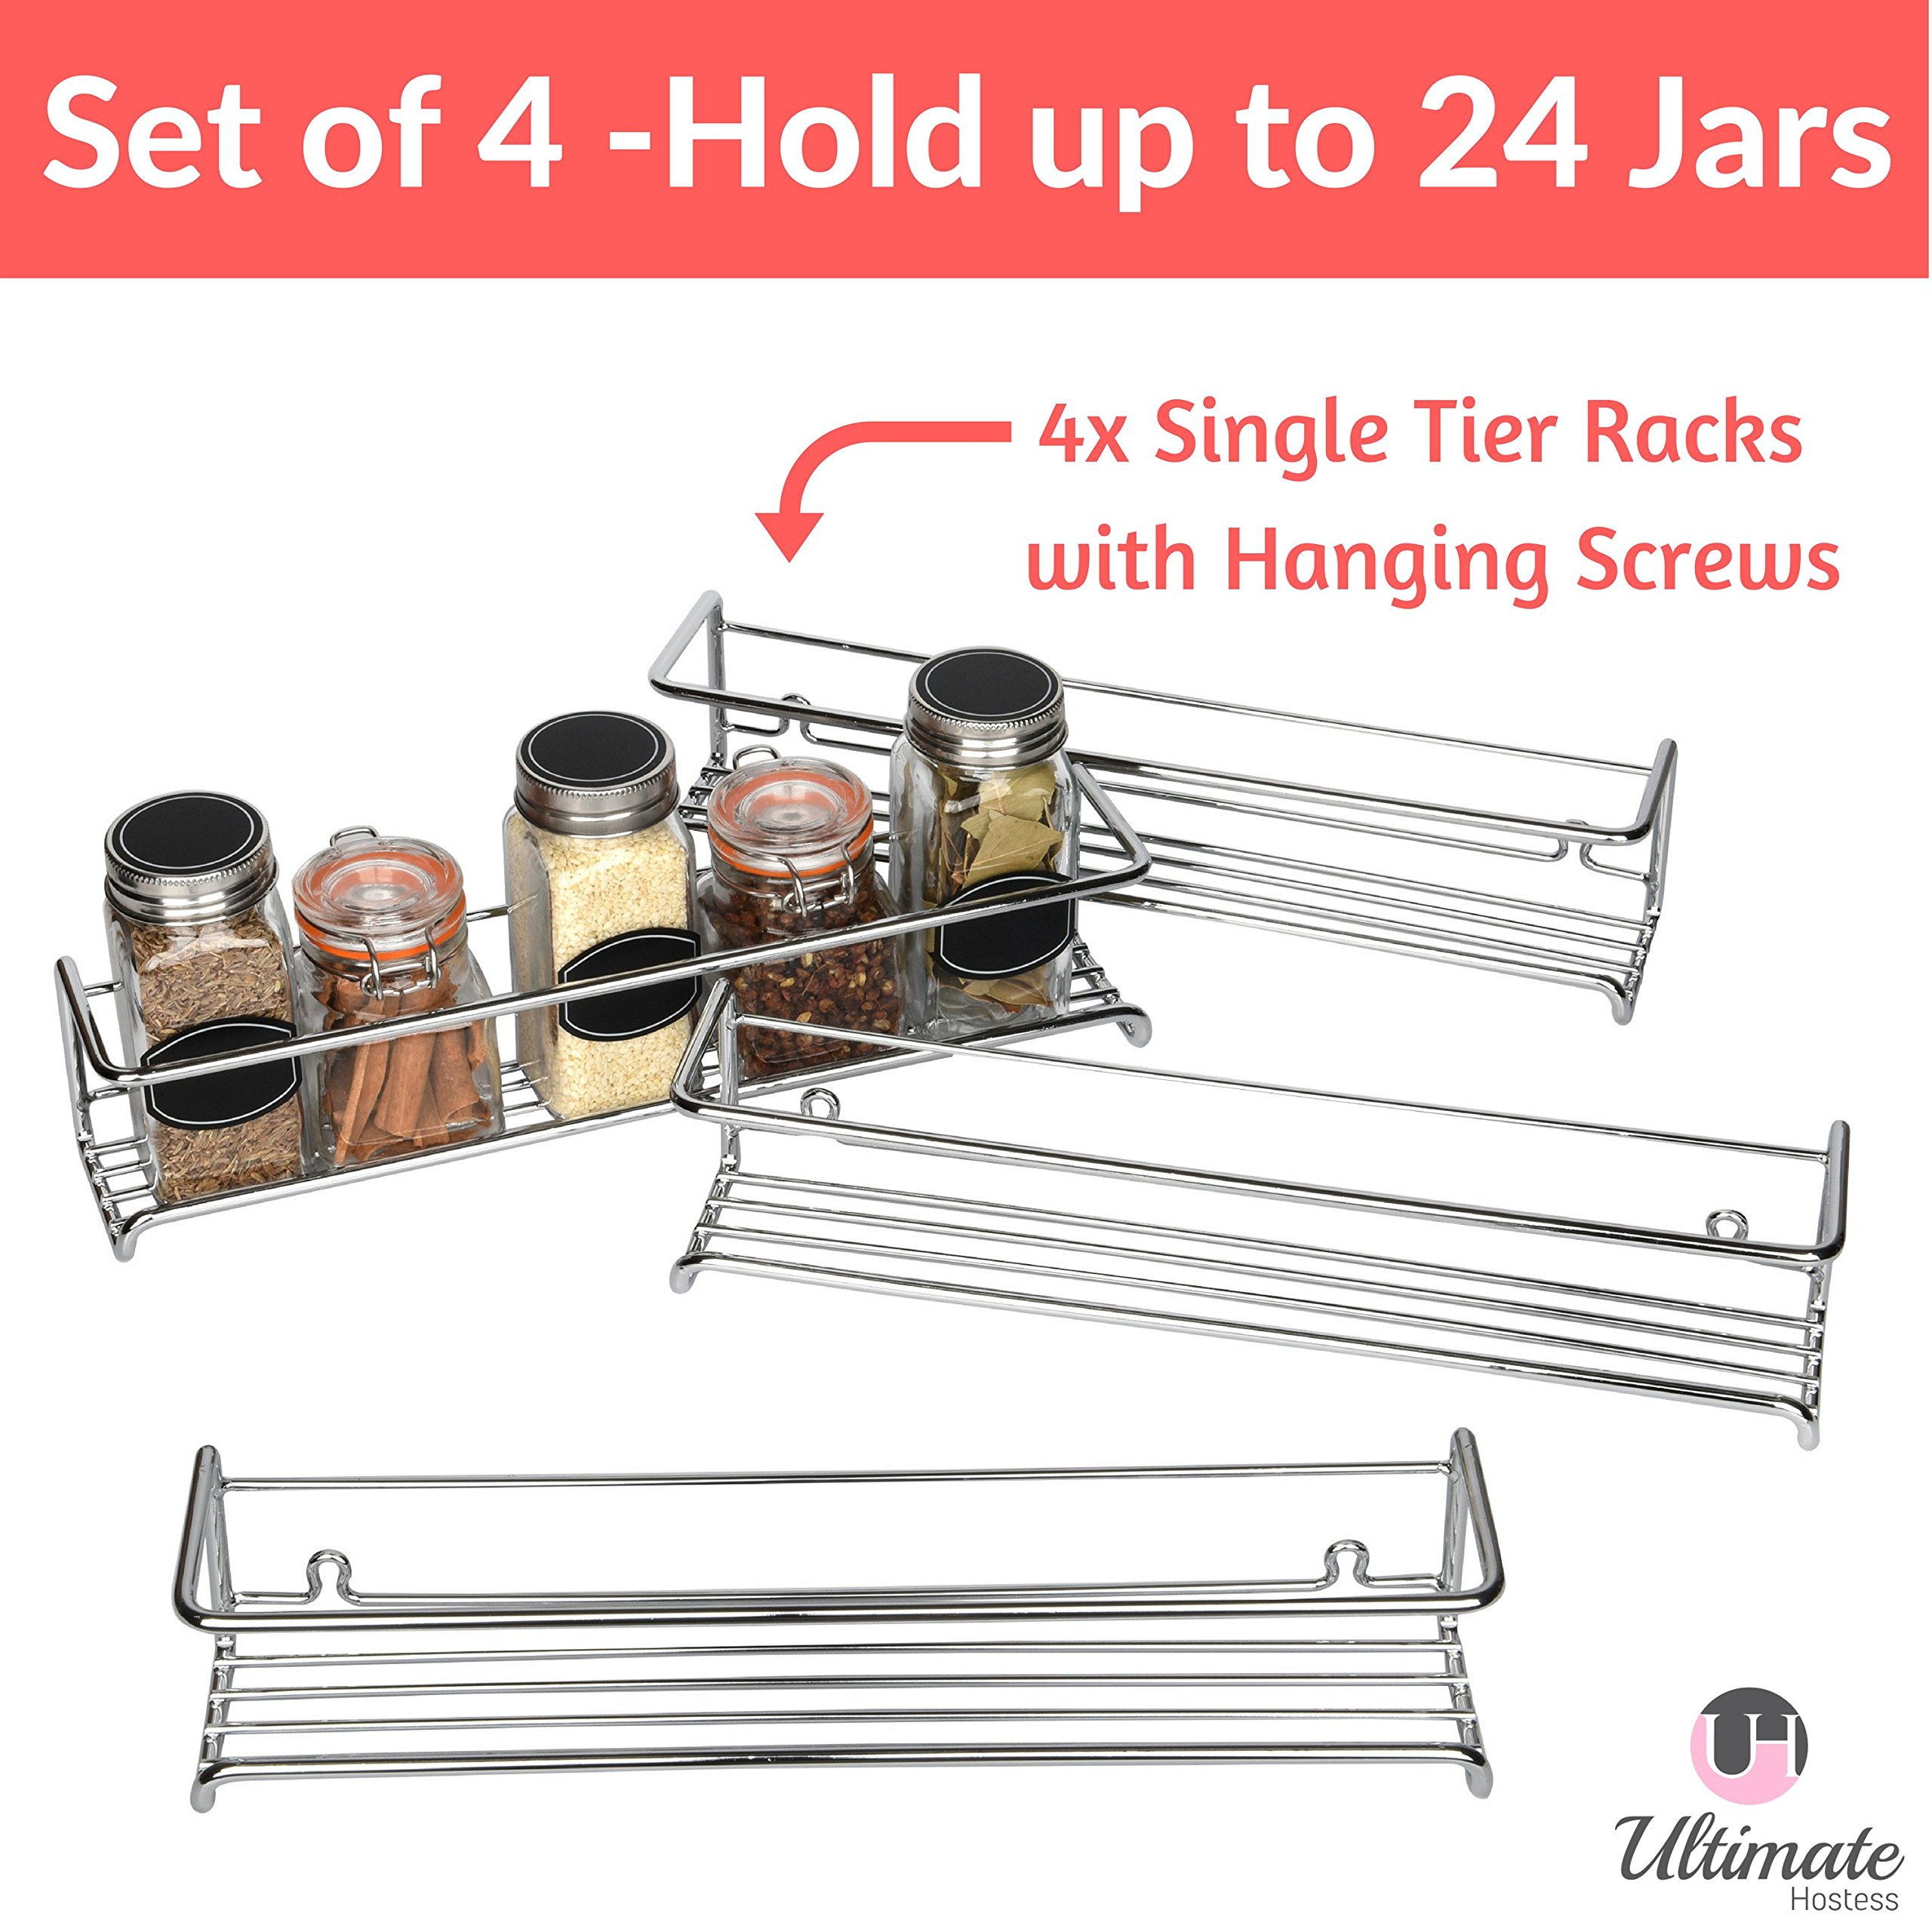 Spice Rack Organizer for Cabinet, Door Mount, or Wall Mounted - Set of 4 Chrome Tiered Hanging Shelf for Spice Jars - Storage in Cupboard, Kitchen or Pantry - Display bottles on shelves, in cabinets by Ultimate Hostess (Image #2)